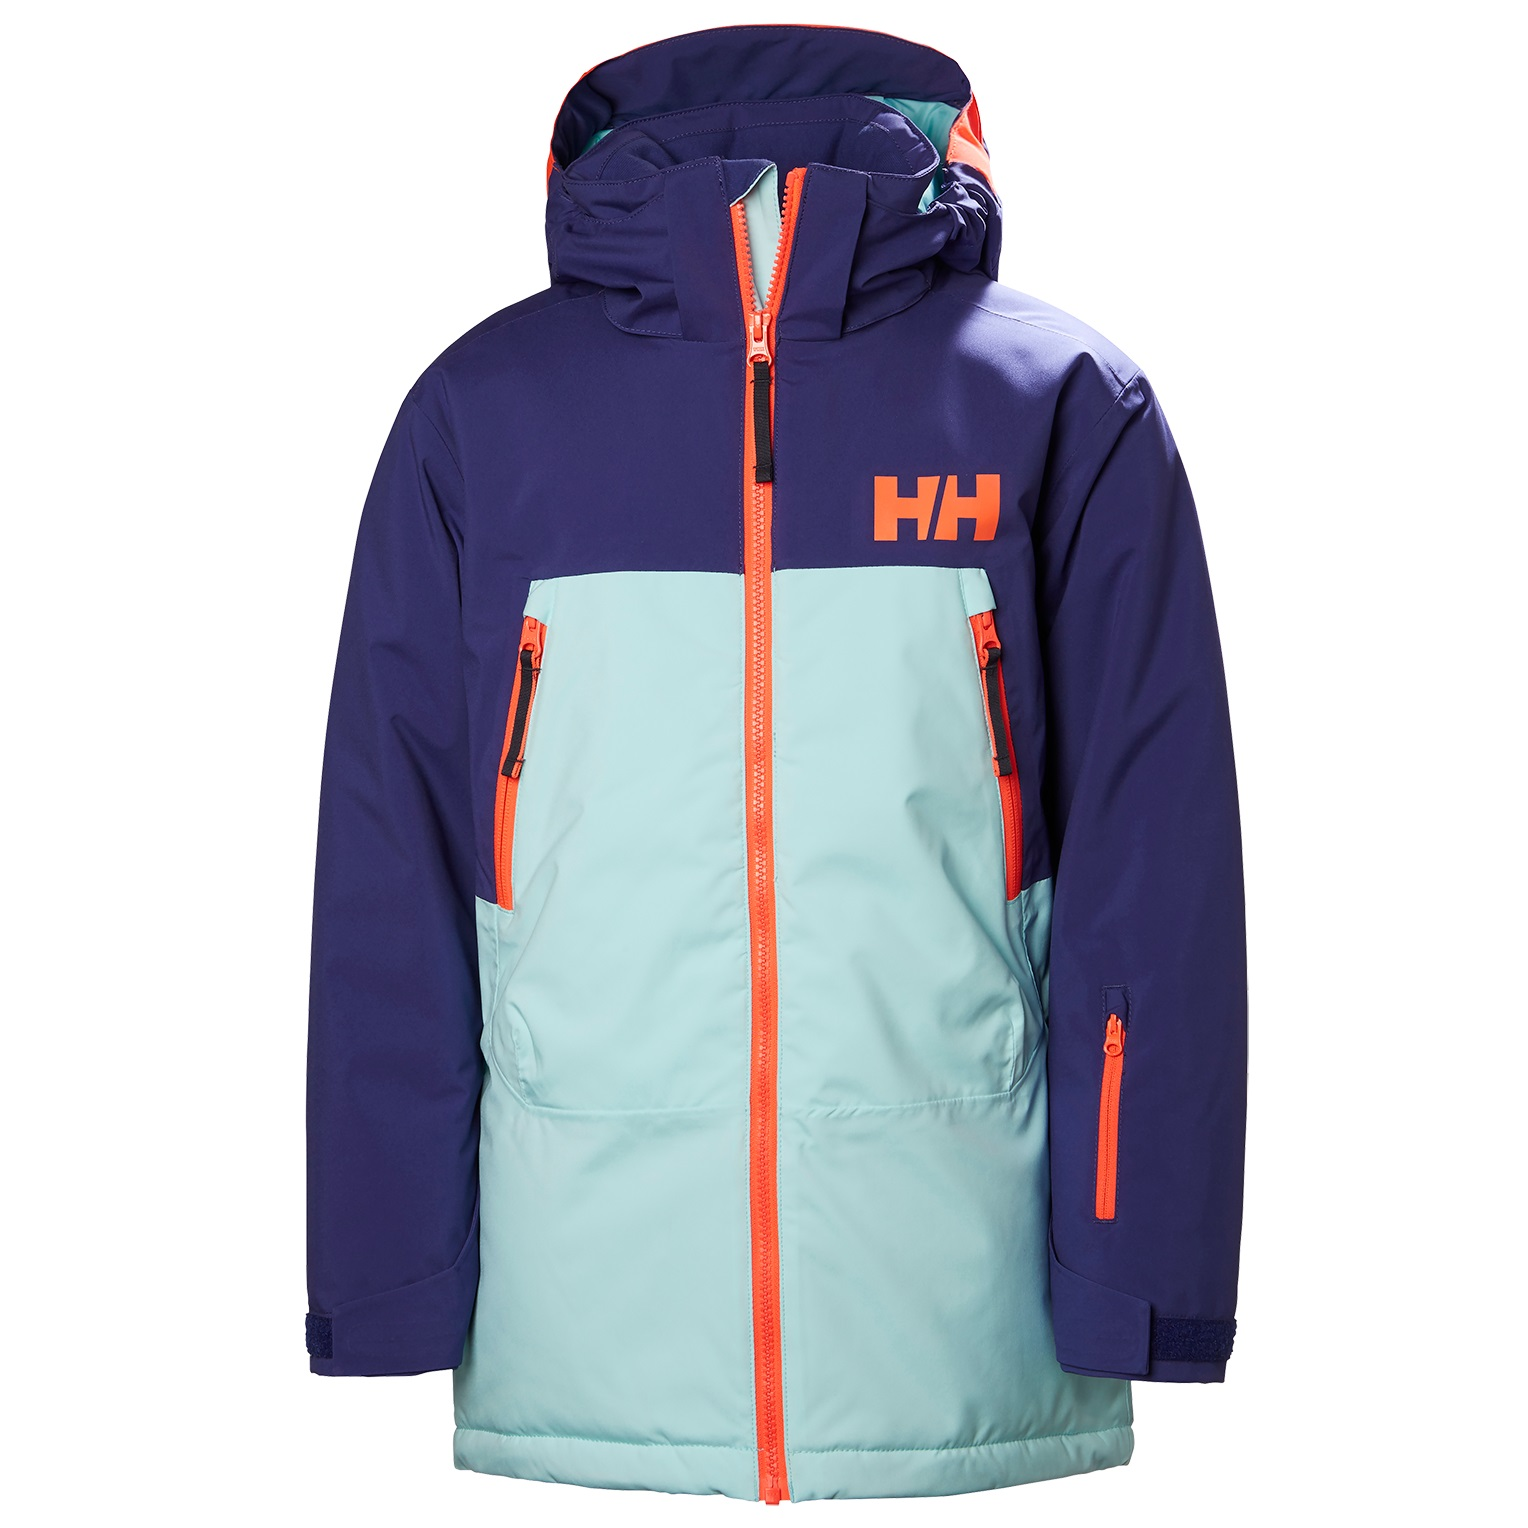 b1ca3d8f0 Helly Hansen Sector Jacket - Kids